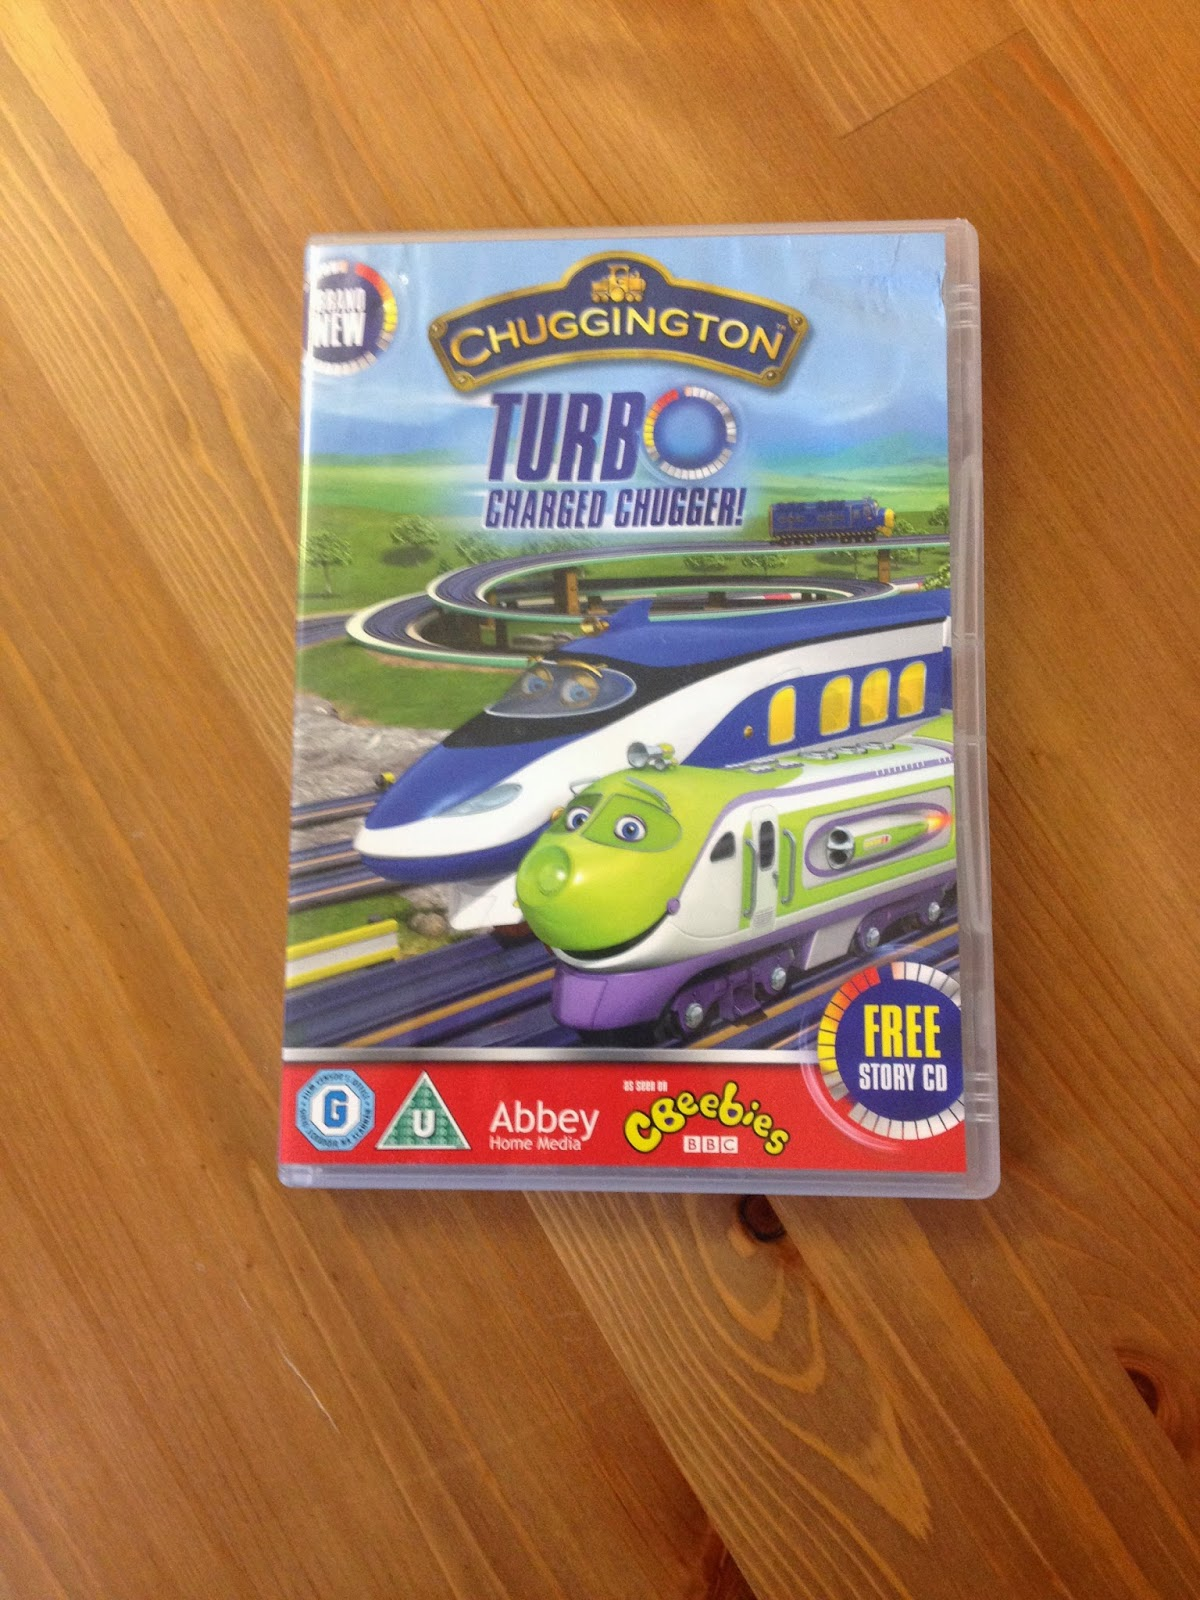 Review – Chuggington Turbo Charged Chugger! DVD Abbey Kids Home Media